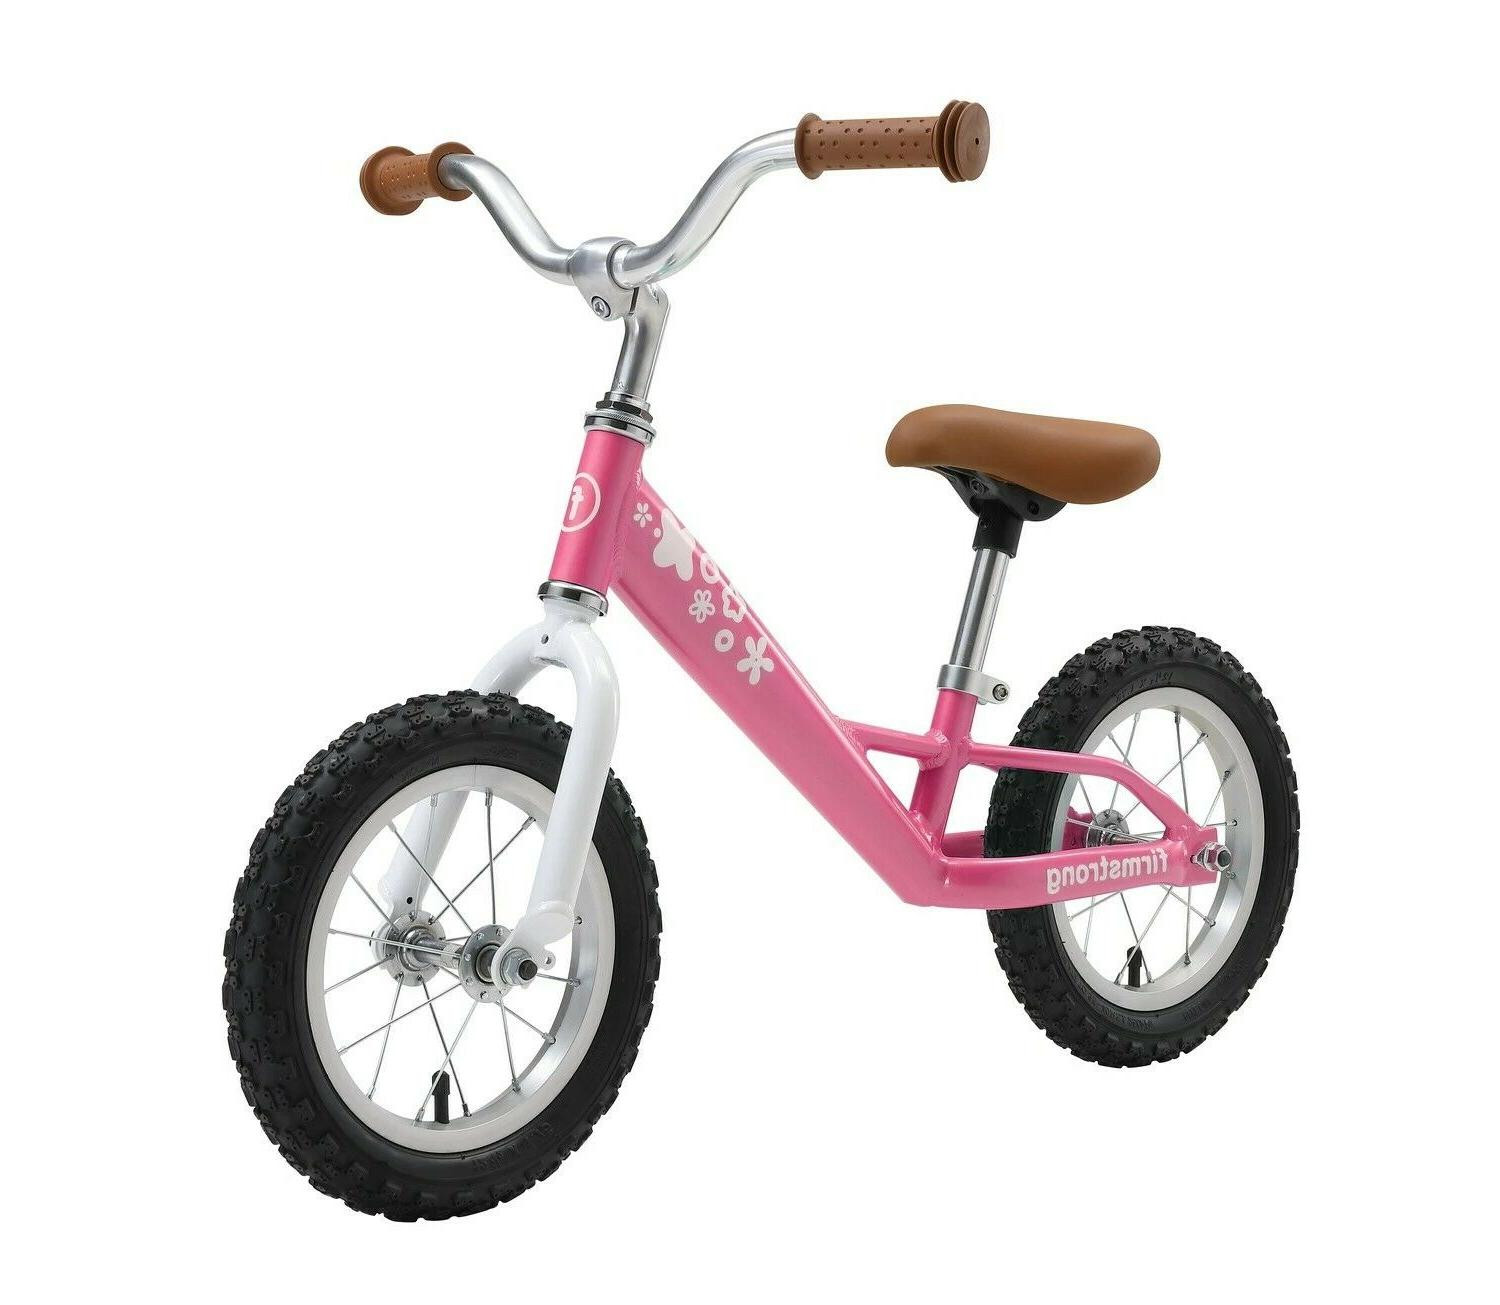 balance bike with air tires for kids